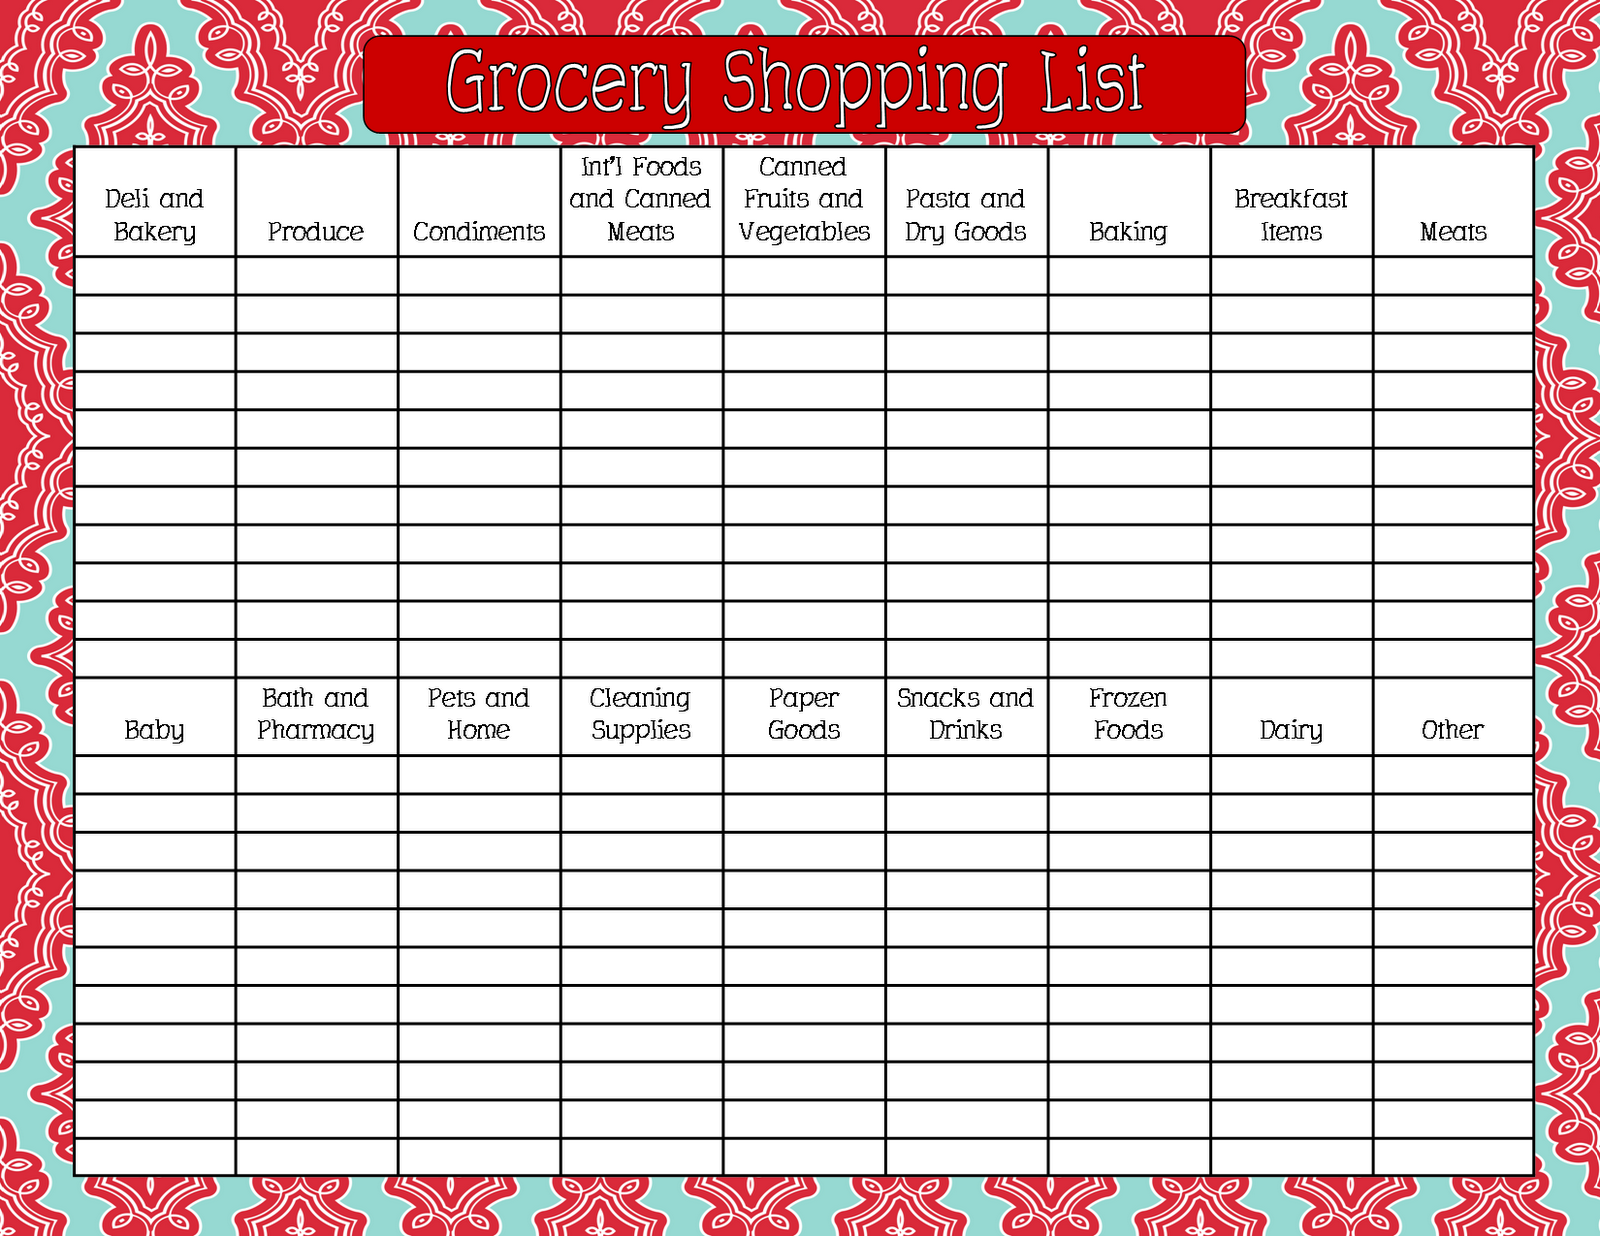 High Quality Grocery Shopping List Printable Intended For Printable Shopping List With Categories